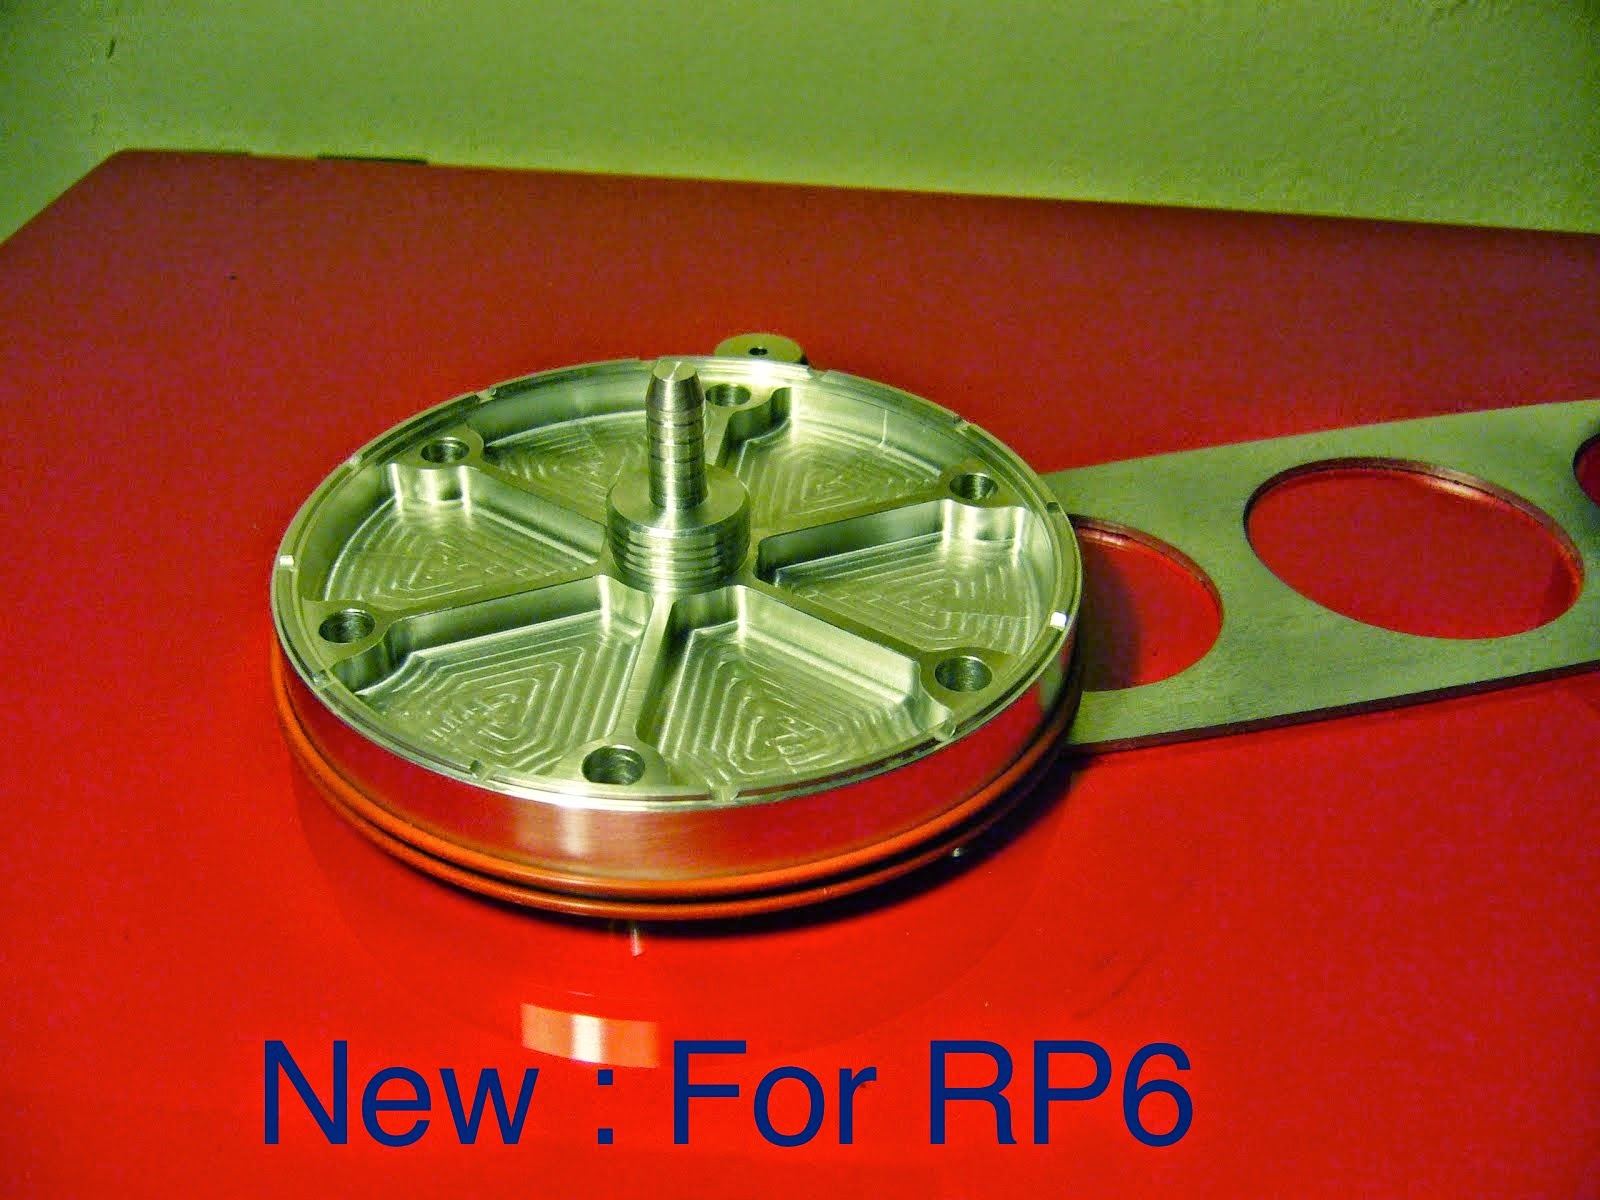 NEW : Click to view FULL Size Aluminium Subplatter for RP6